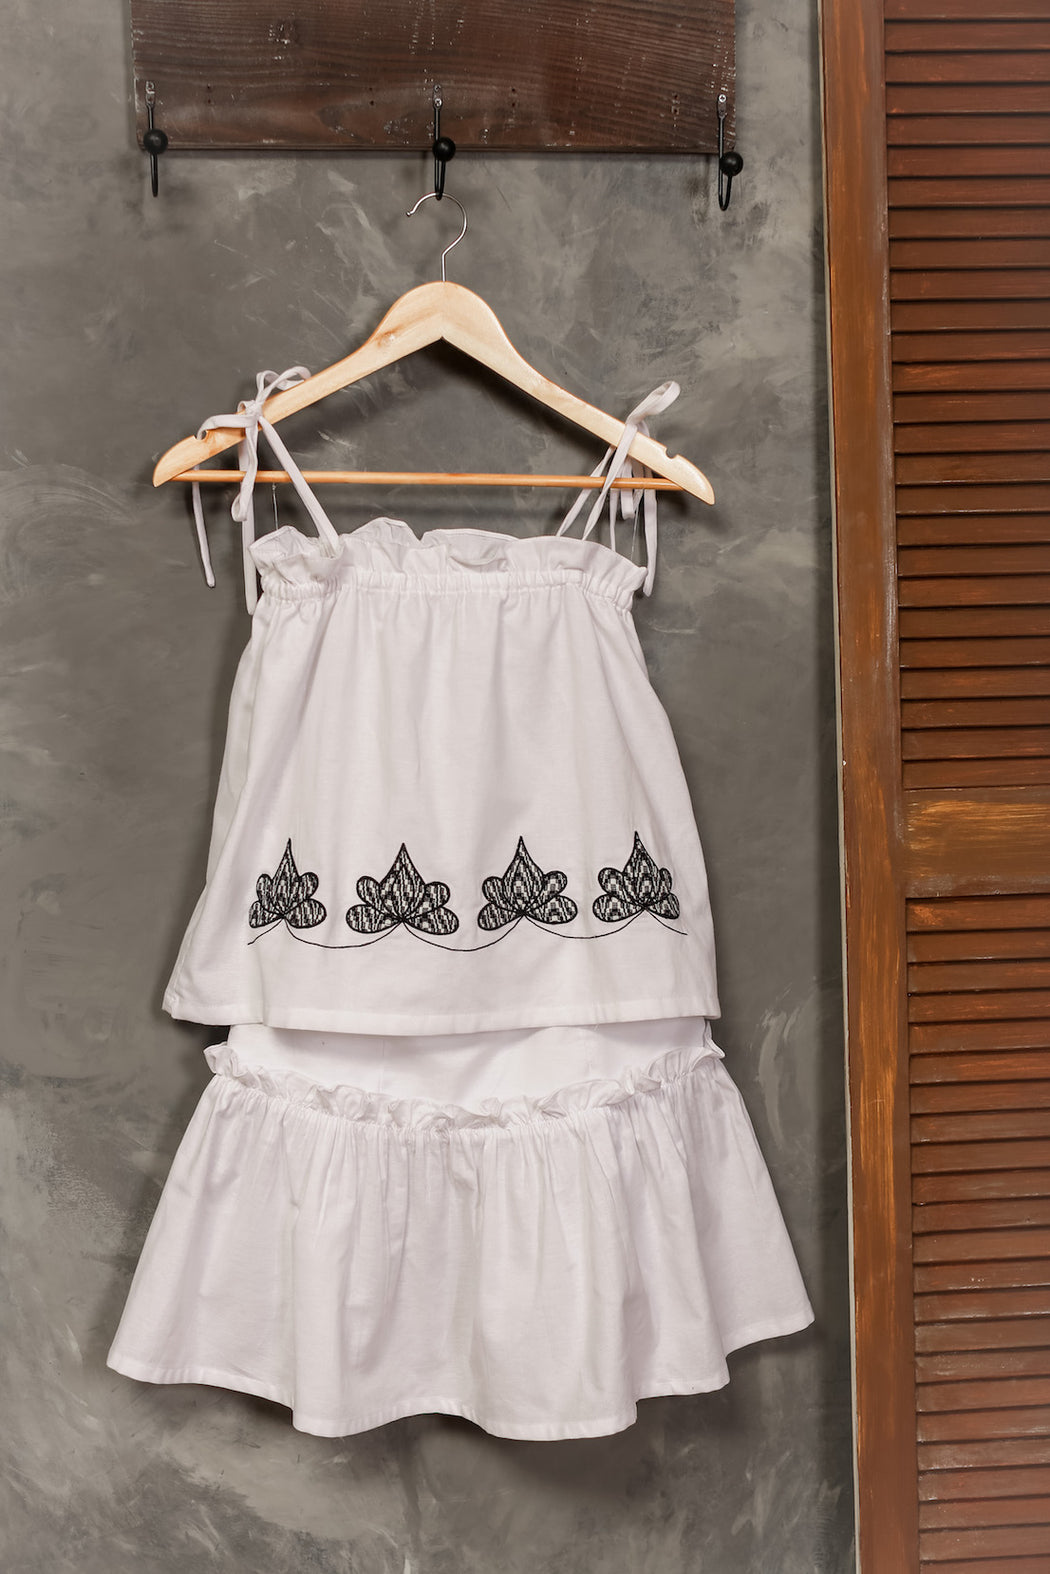 Gaia Embroidered Top & Skirt Set - White